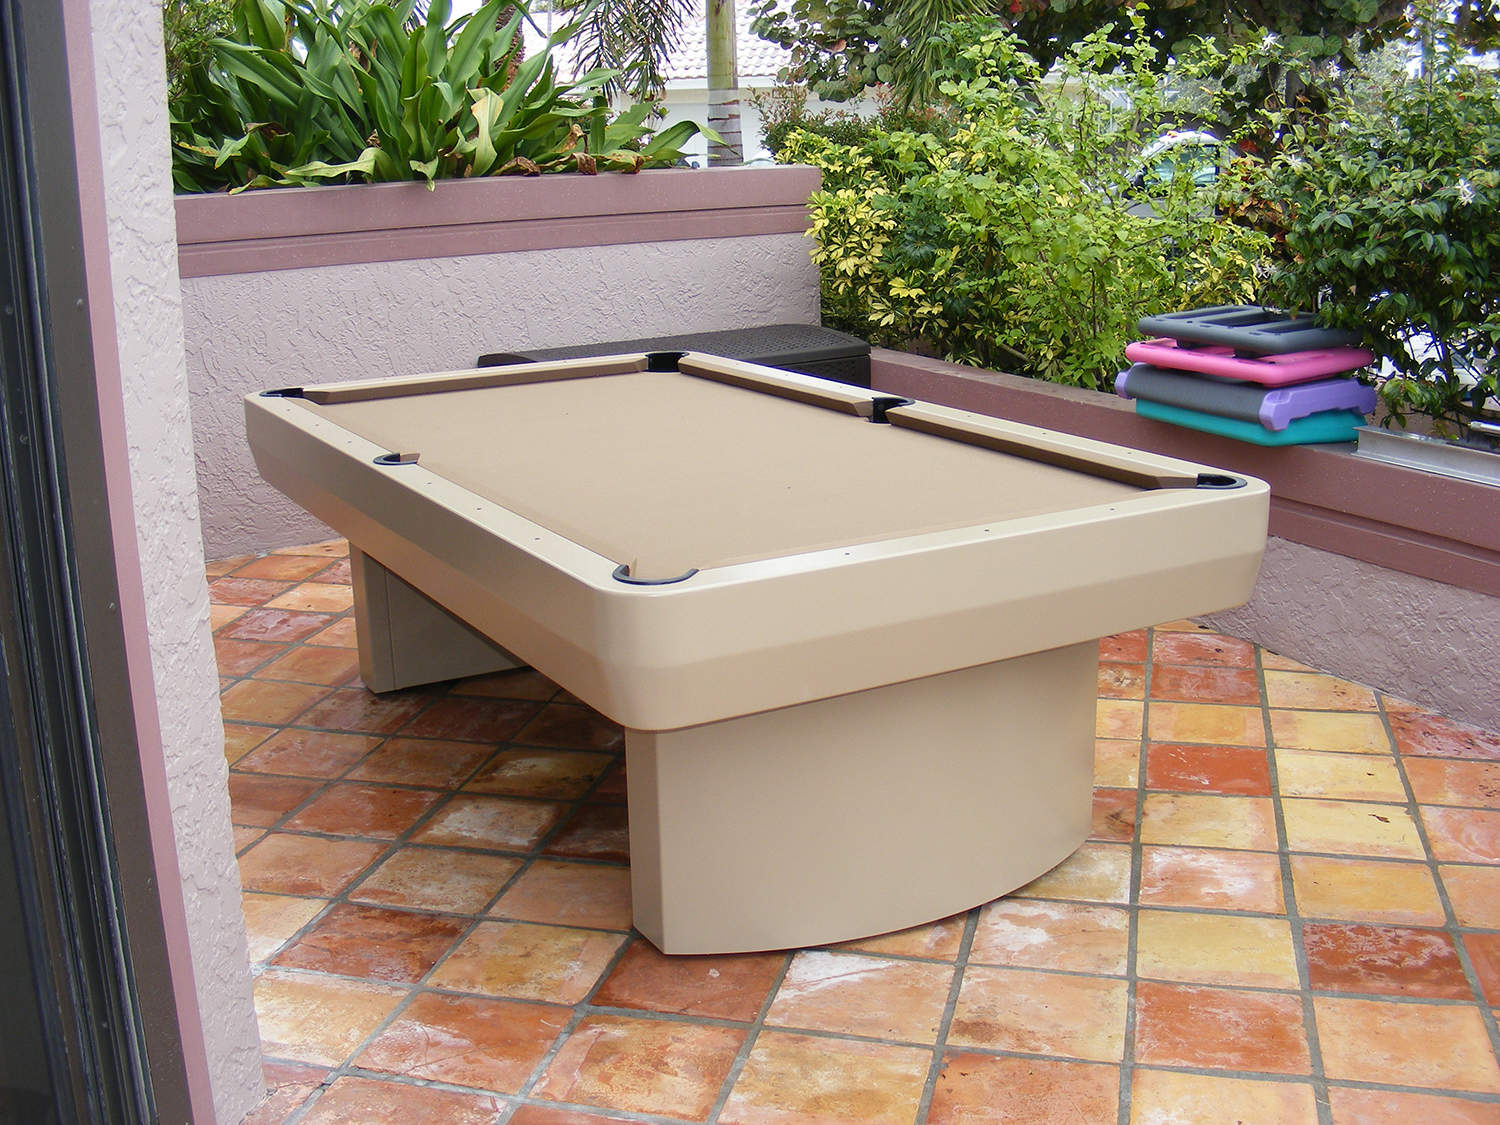 3000 series contemporary table outdoor pool tables - Pool table supplies near me ...